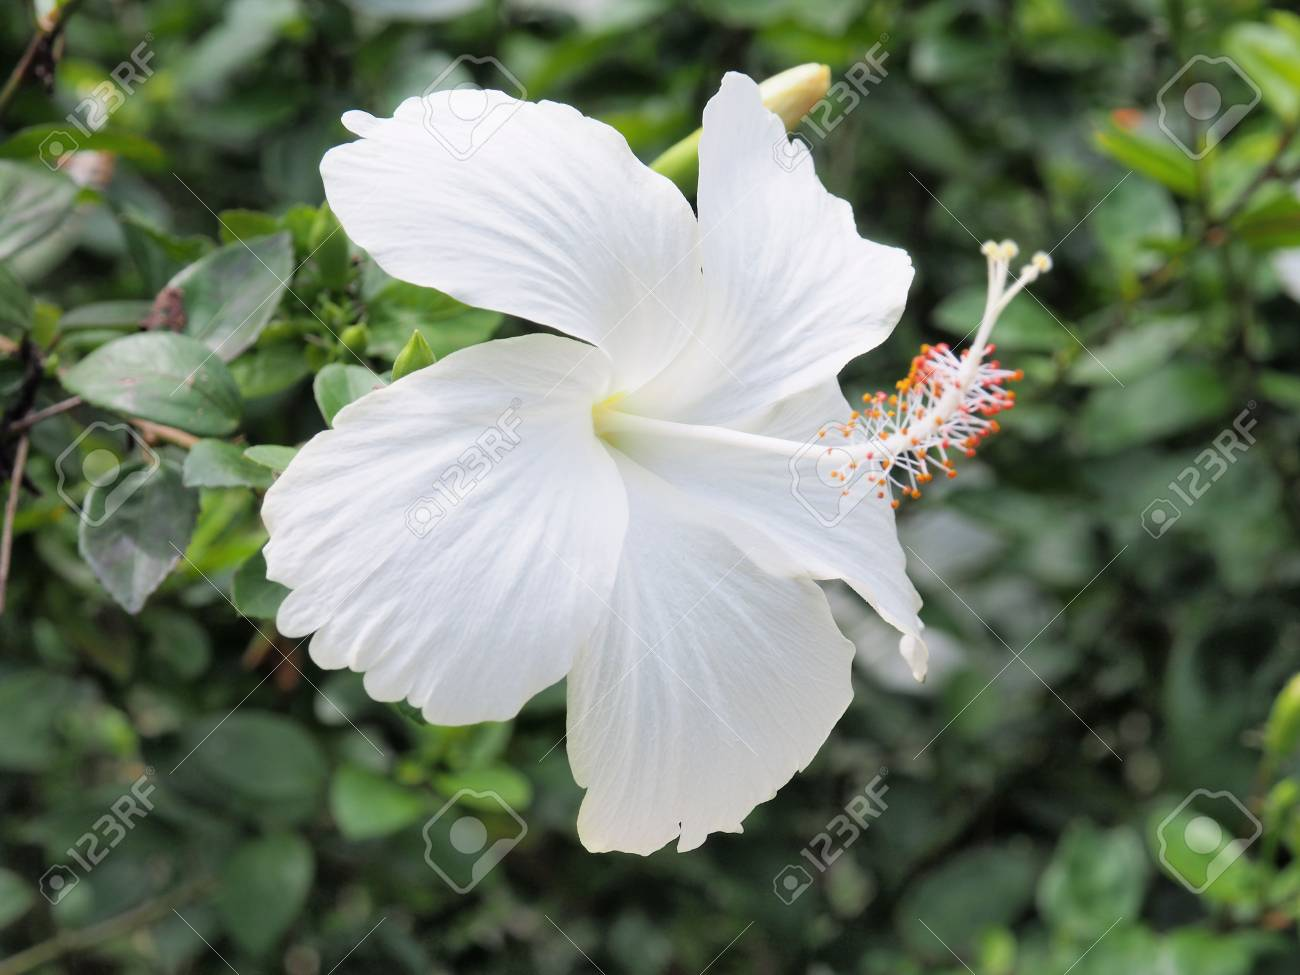 White hibiscus flower blooming in the gardenwhite flower in stock stock photo white hibiscus flower blooming in the gardenwhite flower in the background blurred white flower blossomwhite hibiscus is beautiful mightylinksfo